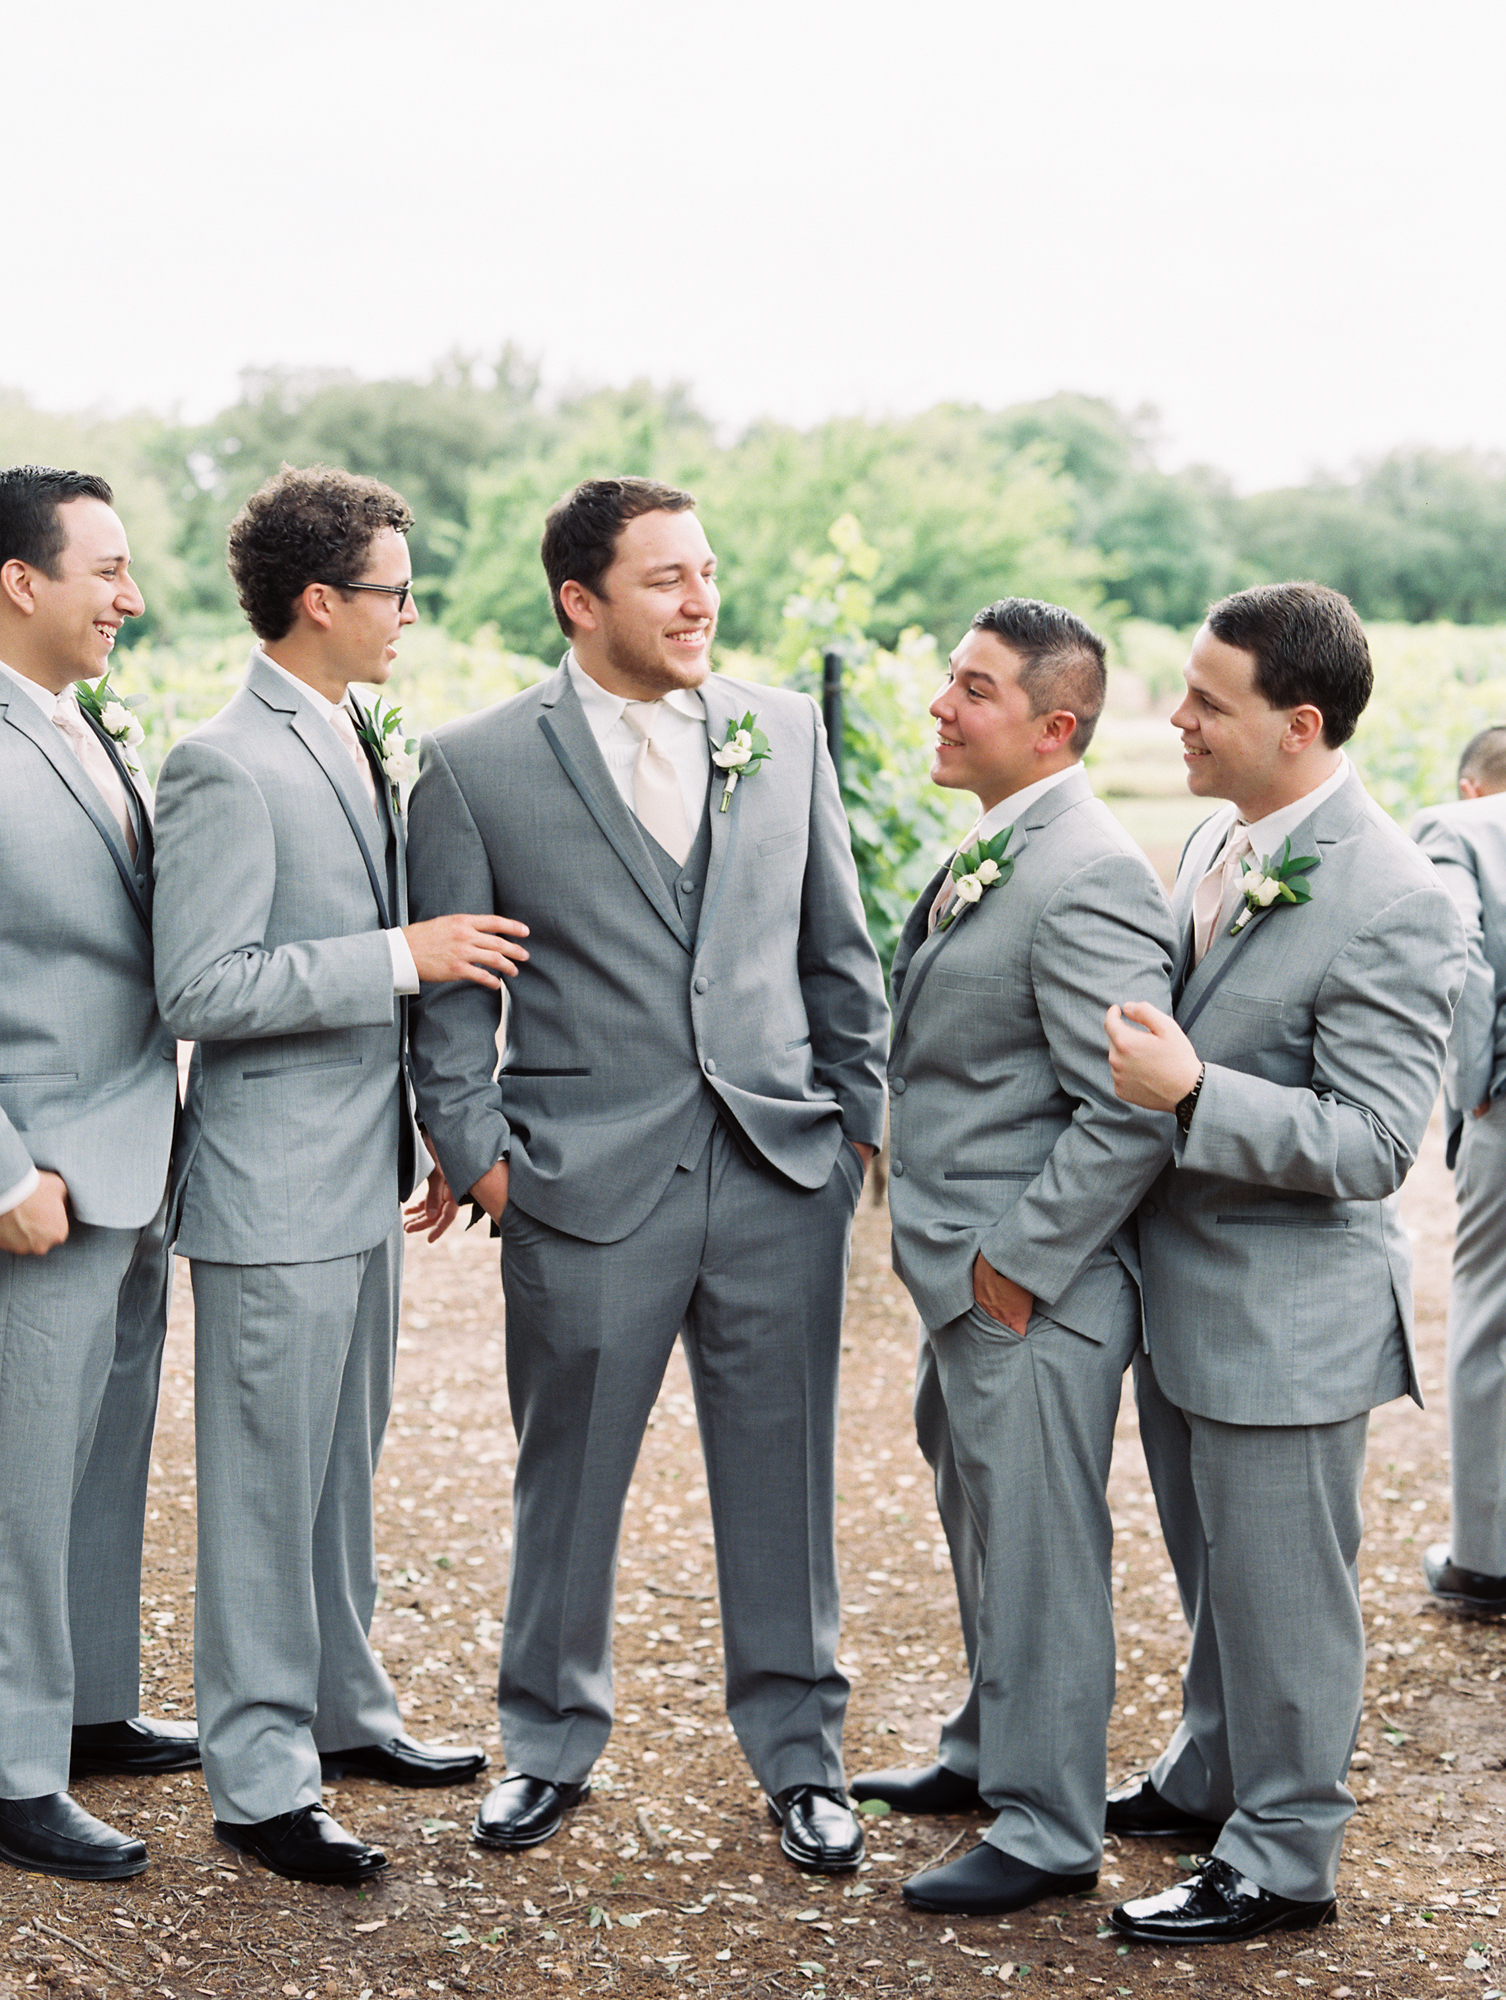 Elegant Spring Vineyard Wedding | Film Wedding Photographer | Austin Wedding Photographer | Groomsmen in Gray Suits | Britni Dean Photography // britnidean.com